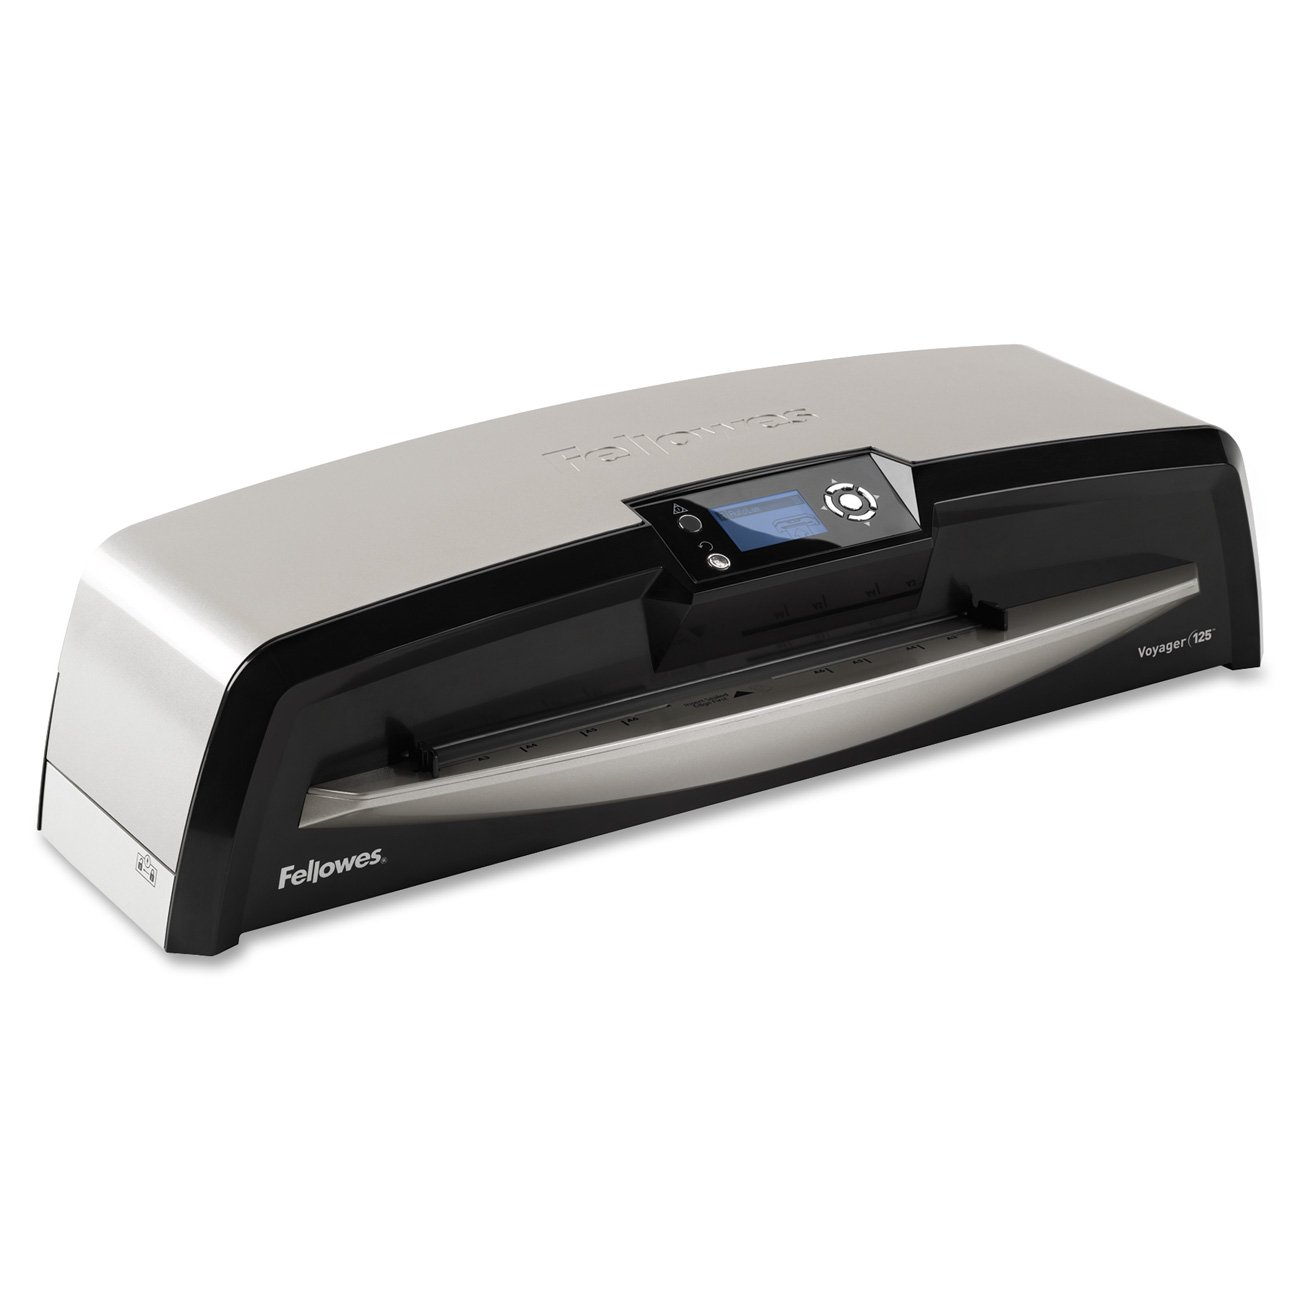 Fellowes Laminator Voyager 125, Automatic Features, Jam Free Laminating Machine, with Laminating Pouches Kit (5218601)